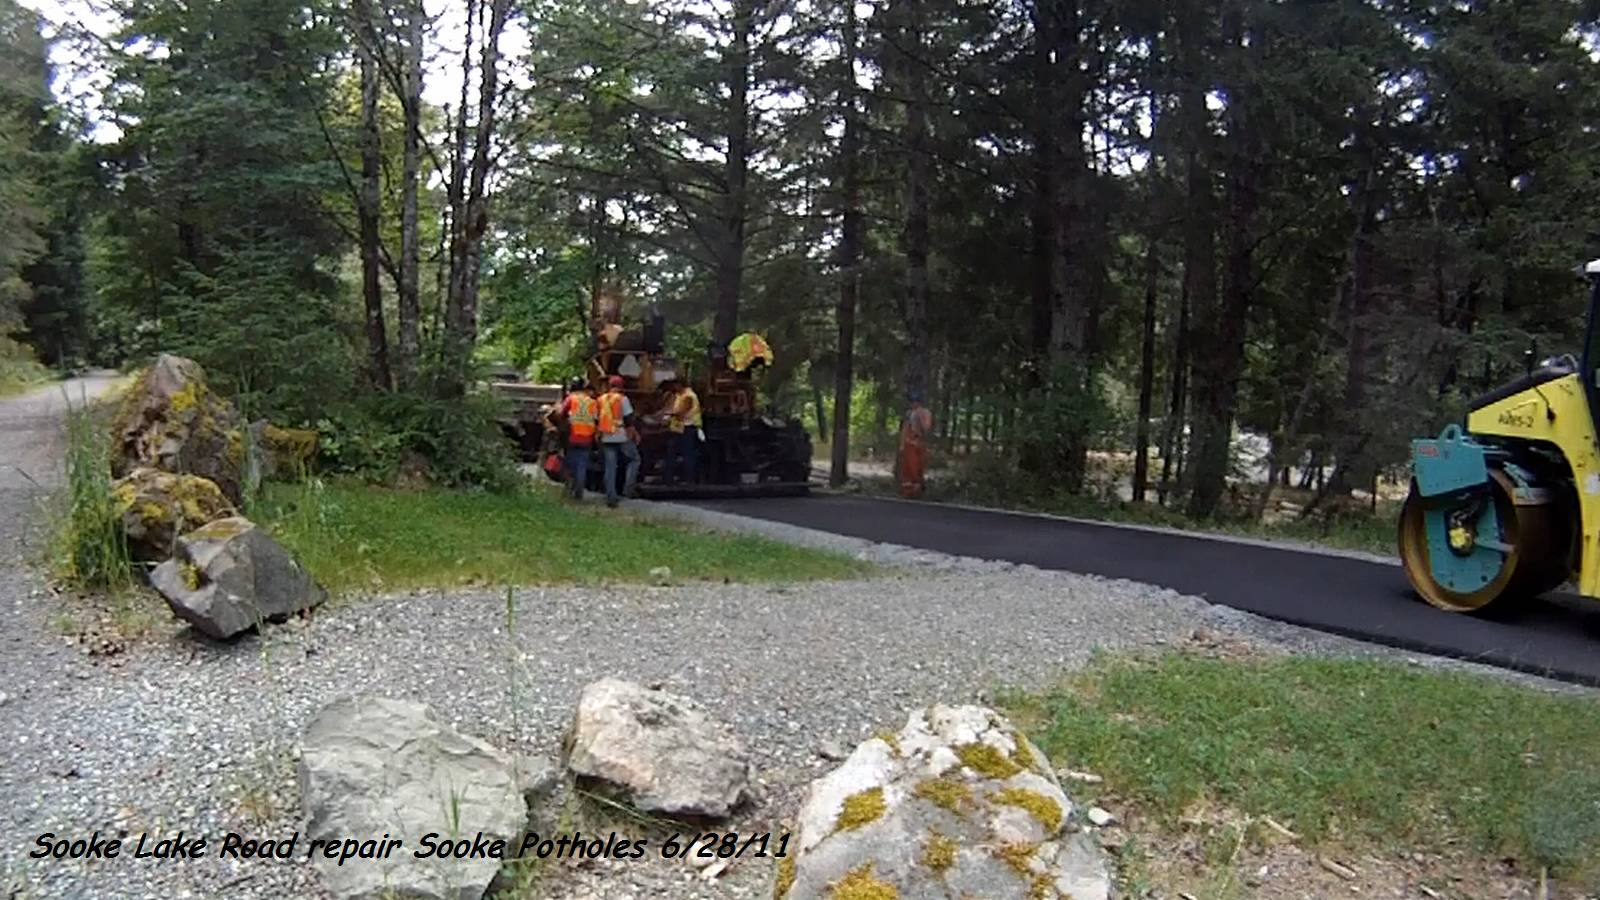 sooke potholes 39 new road today i cycled 28km on the. Black Bedroom Furniture Sets. Home Design Ideas